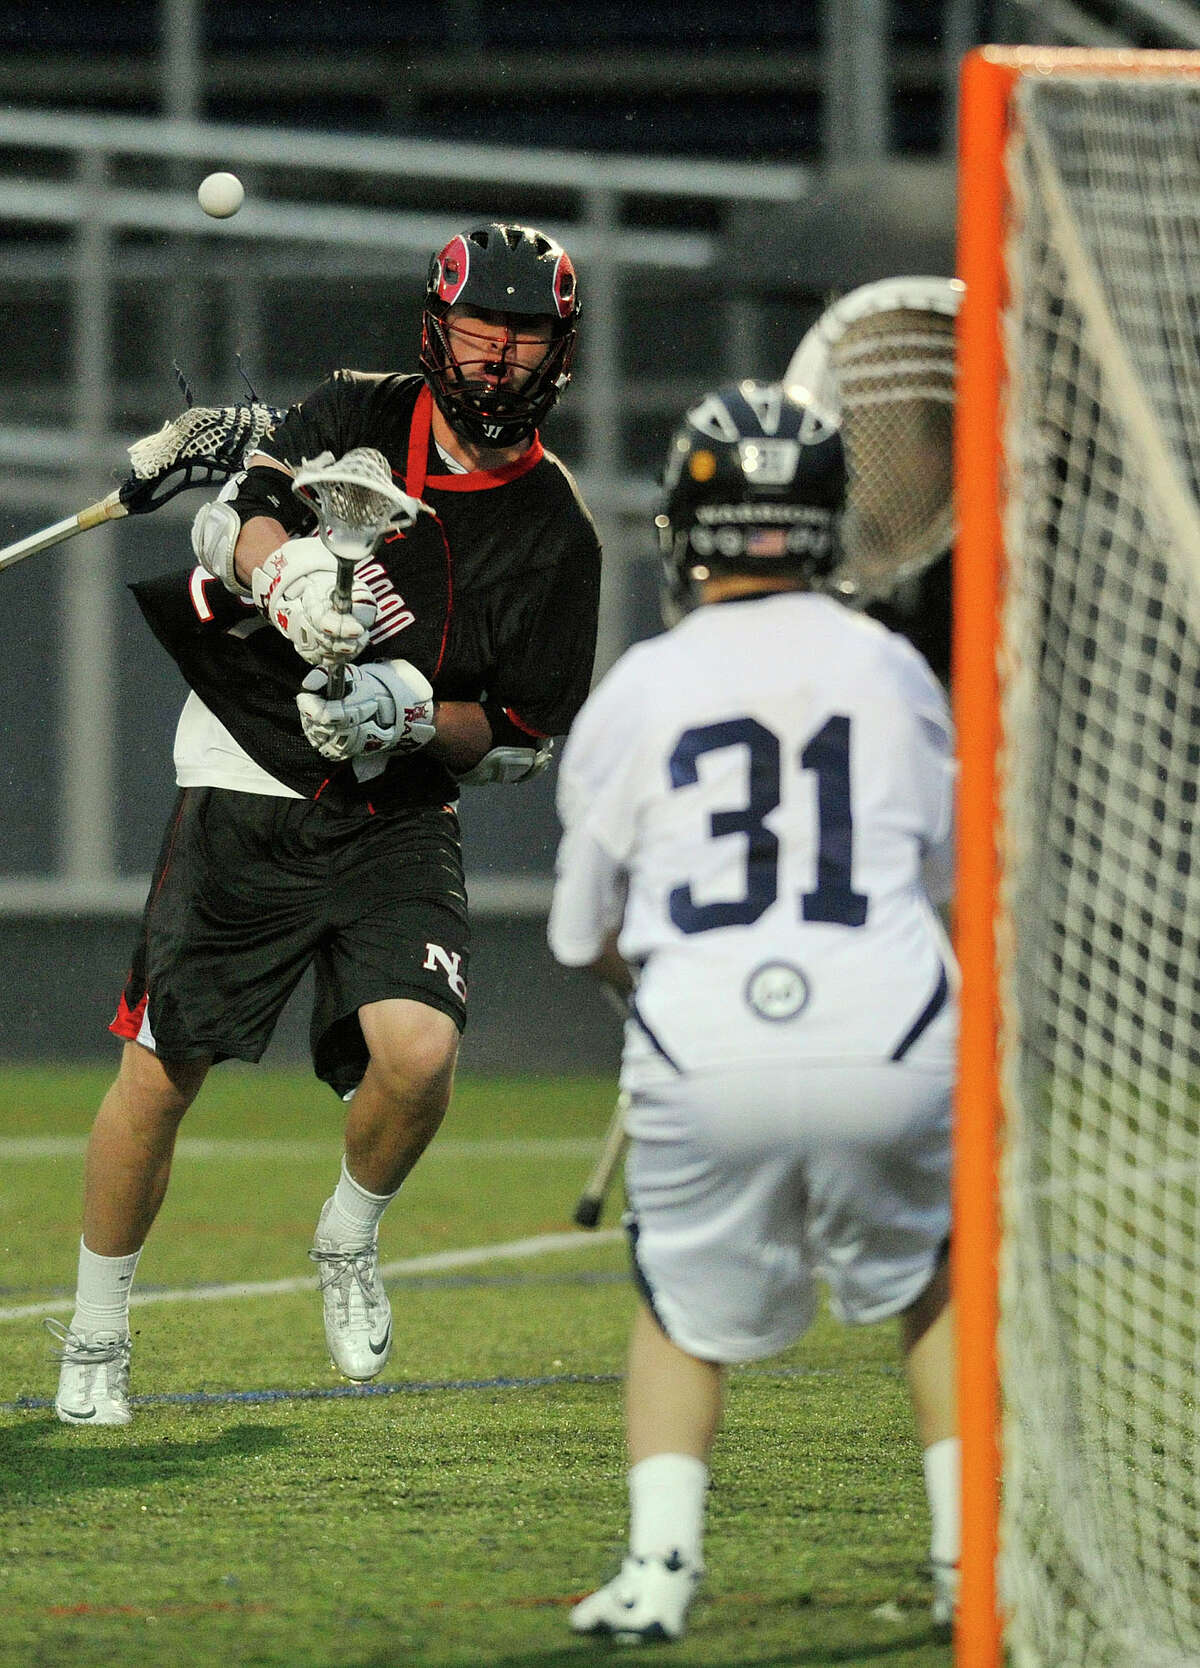 New Canaan's Kyle Smith shoots on Wilton goalie Joshua Worley during their lacrosse game at Wilton High School in Wilton, Conn., on Tuesday, April 15, 2014.